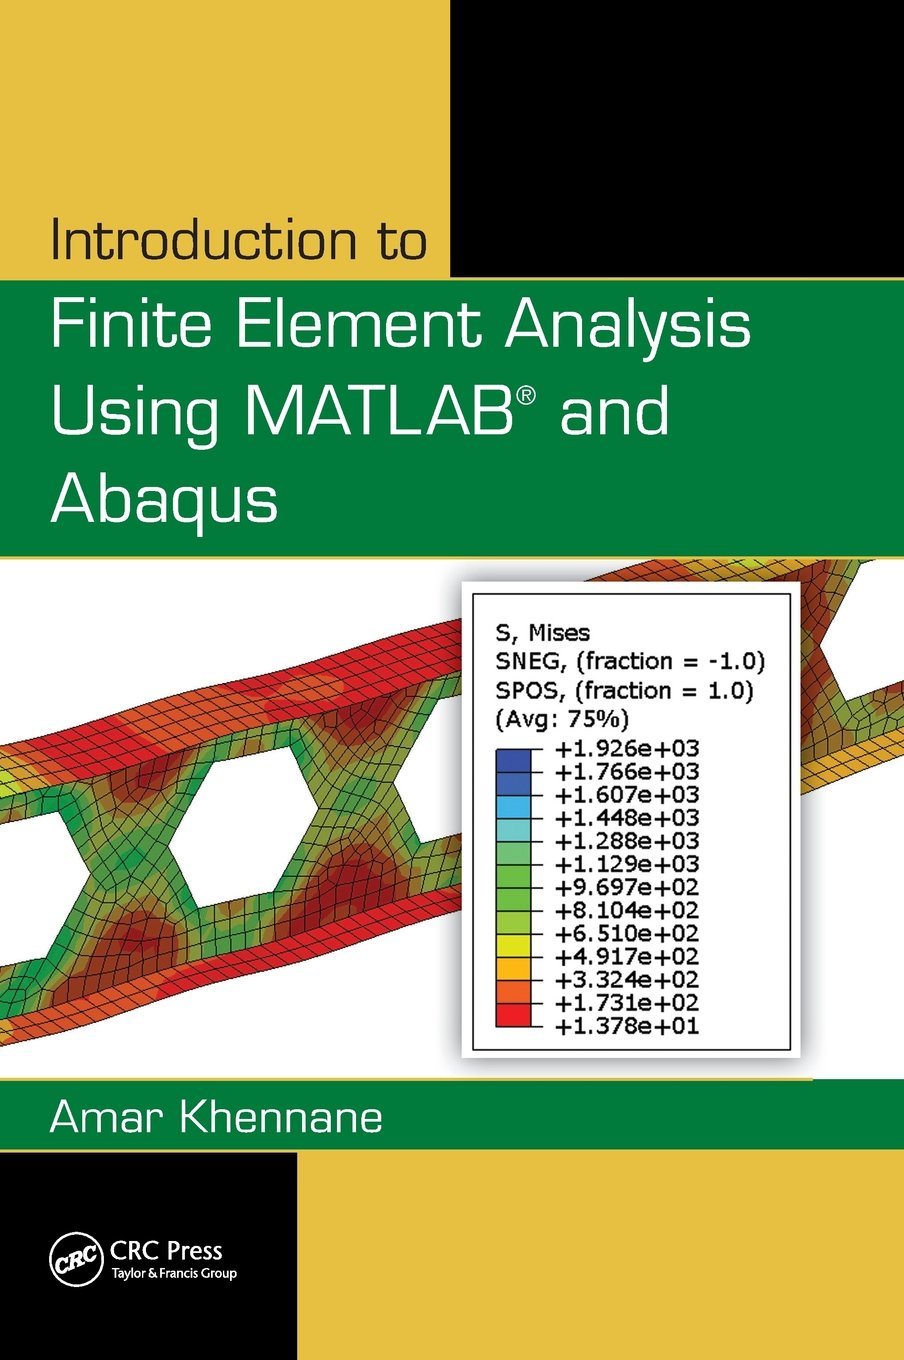 Introduction to Finite Element Analysis Using MATLAB® and